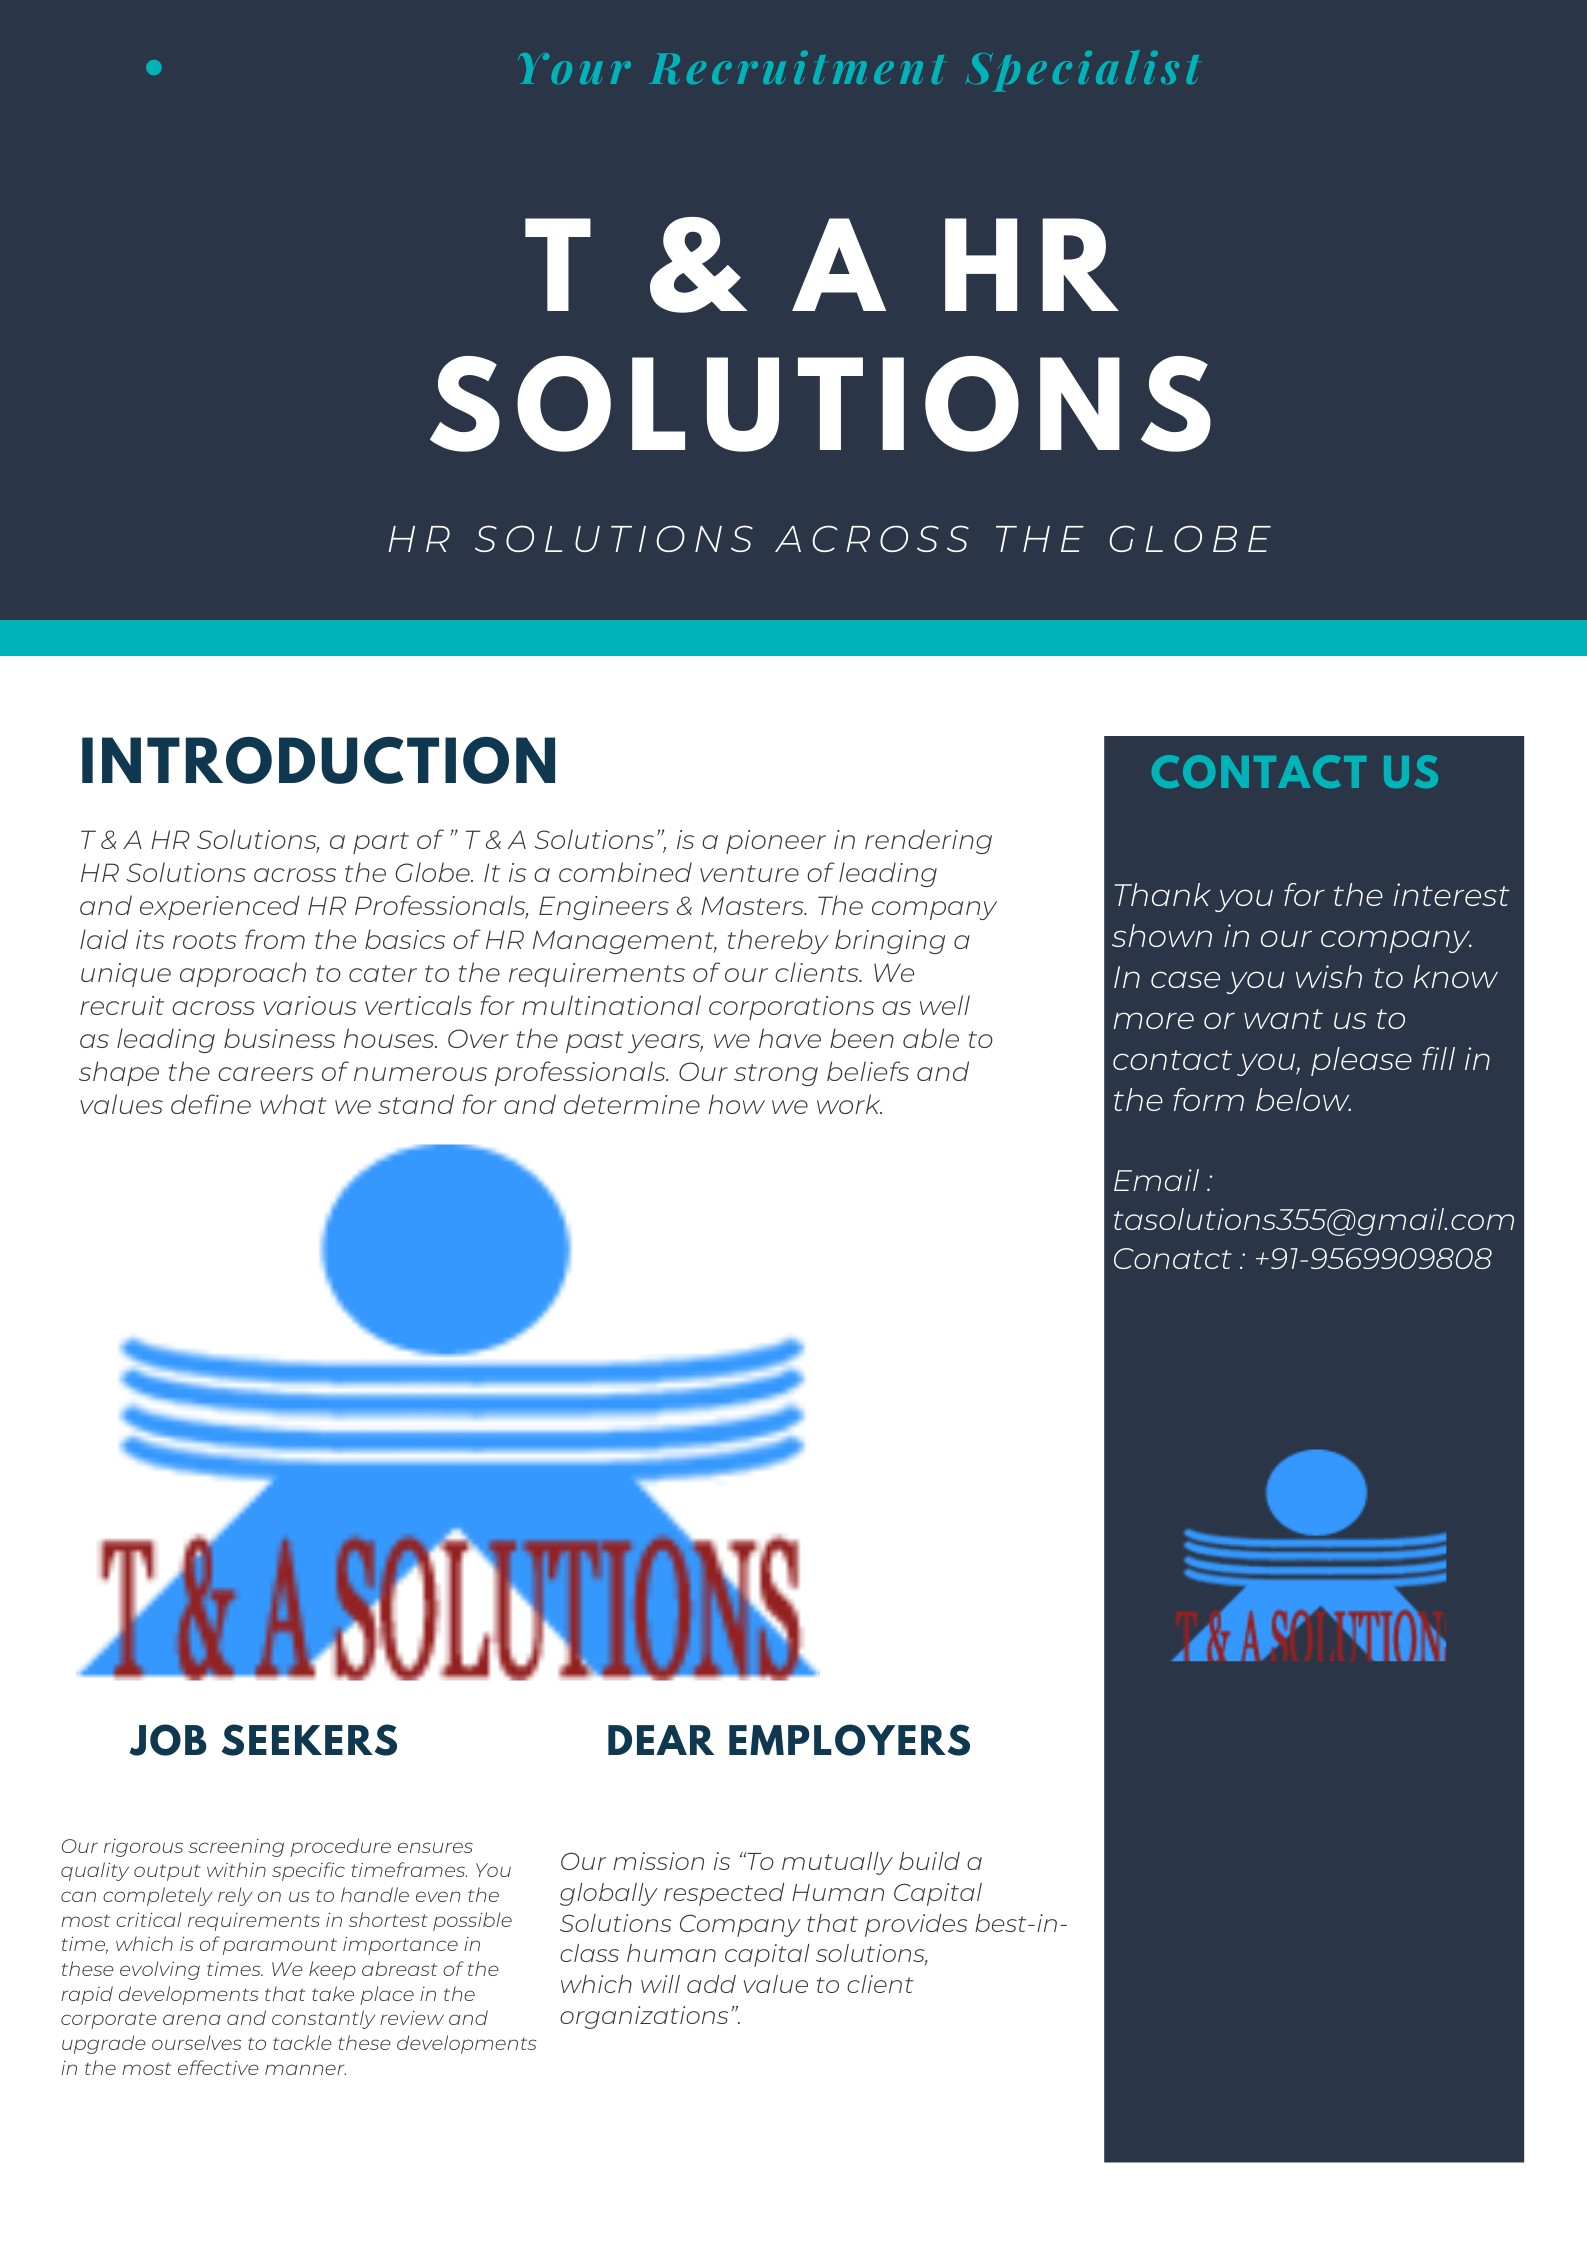 T&A solutions